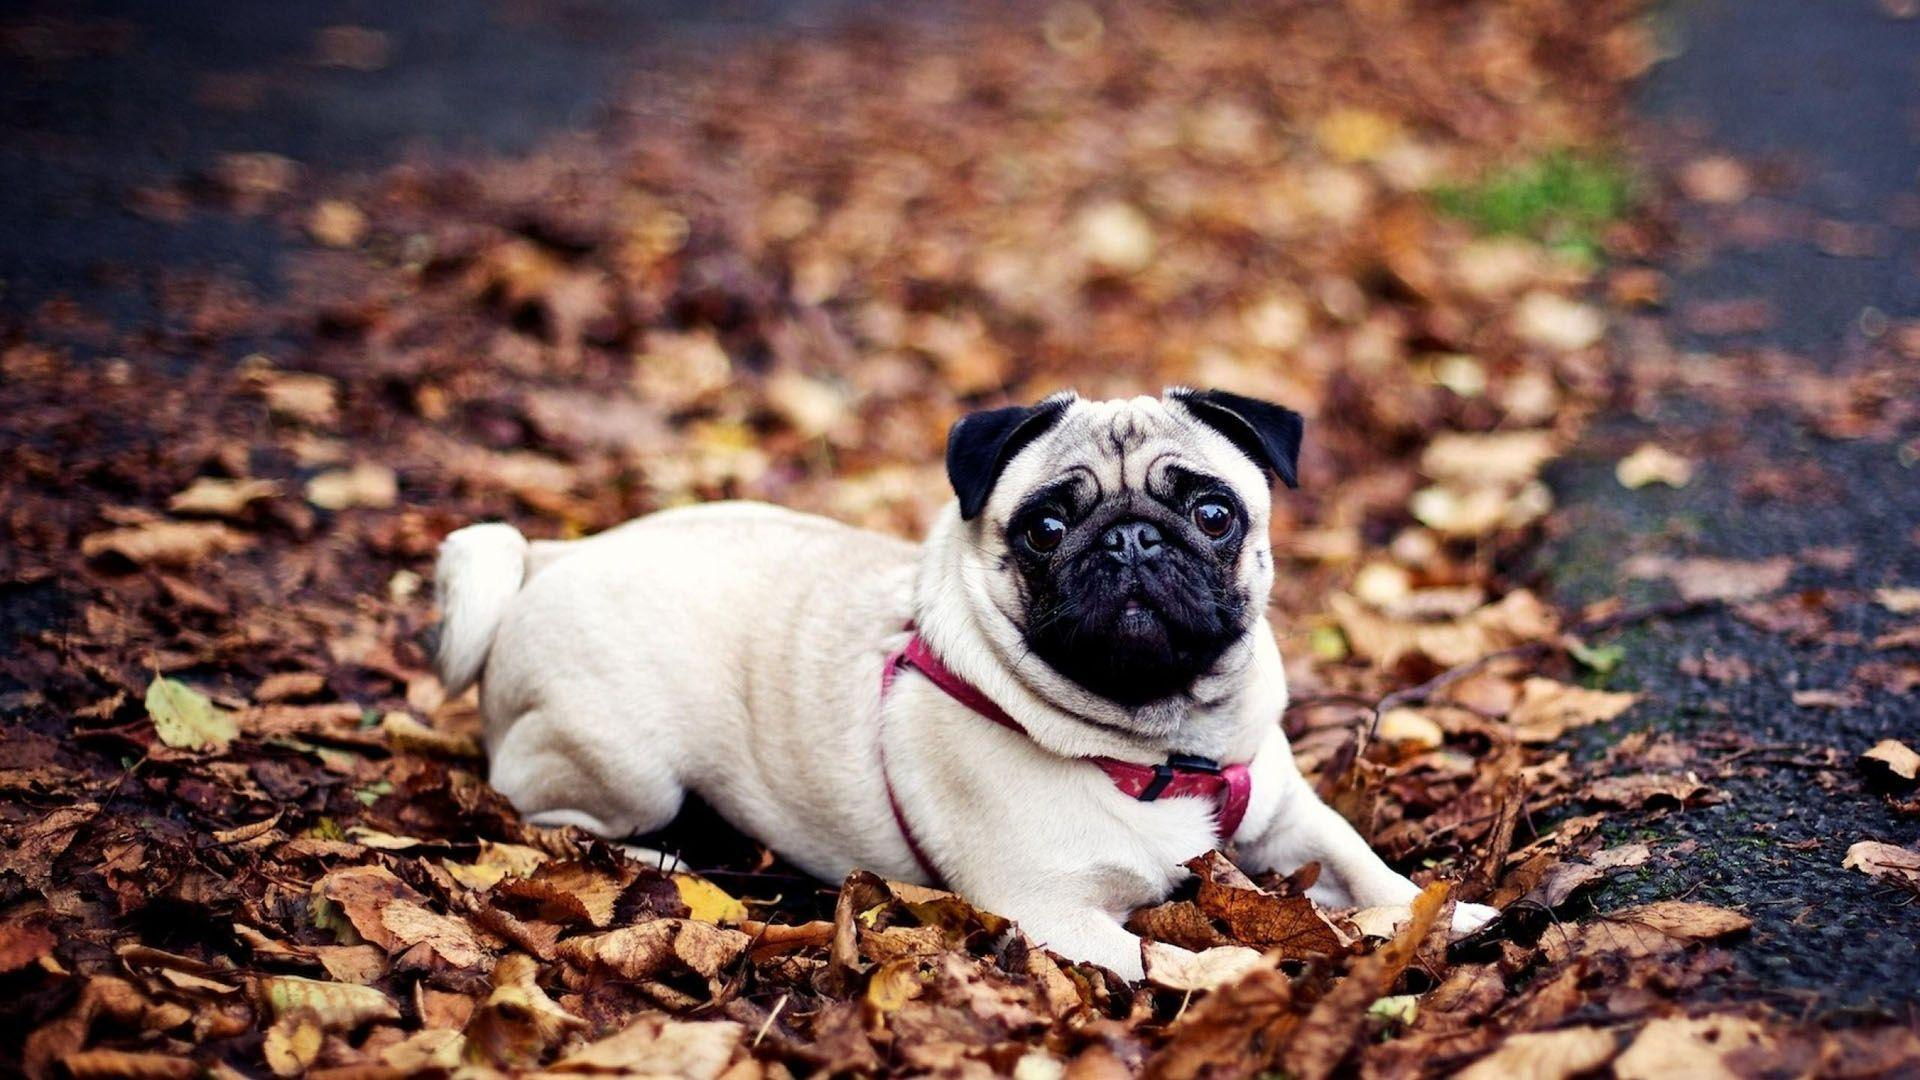 Pug Dog Hd Wallpapers For Laptop Wallpaper Cave